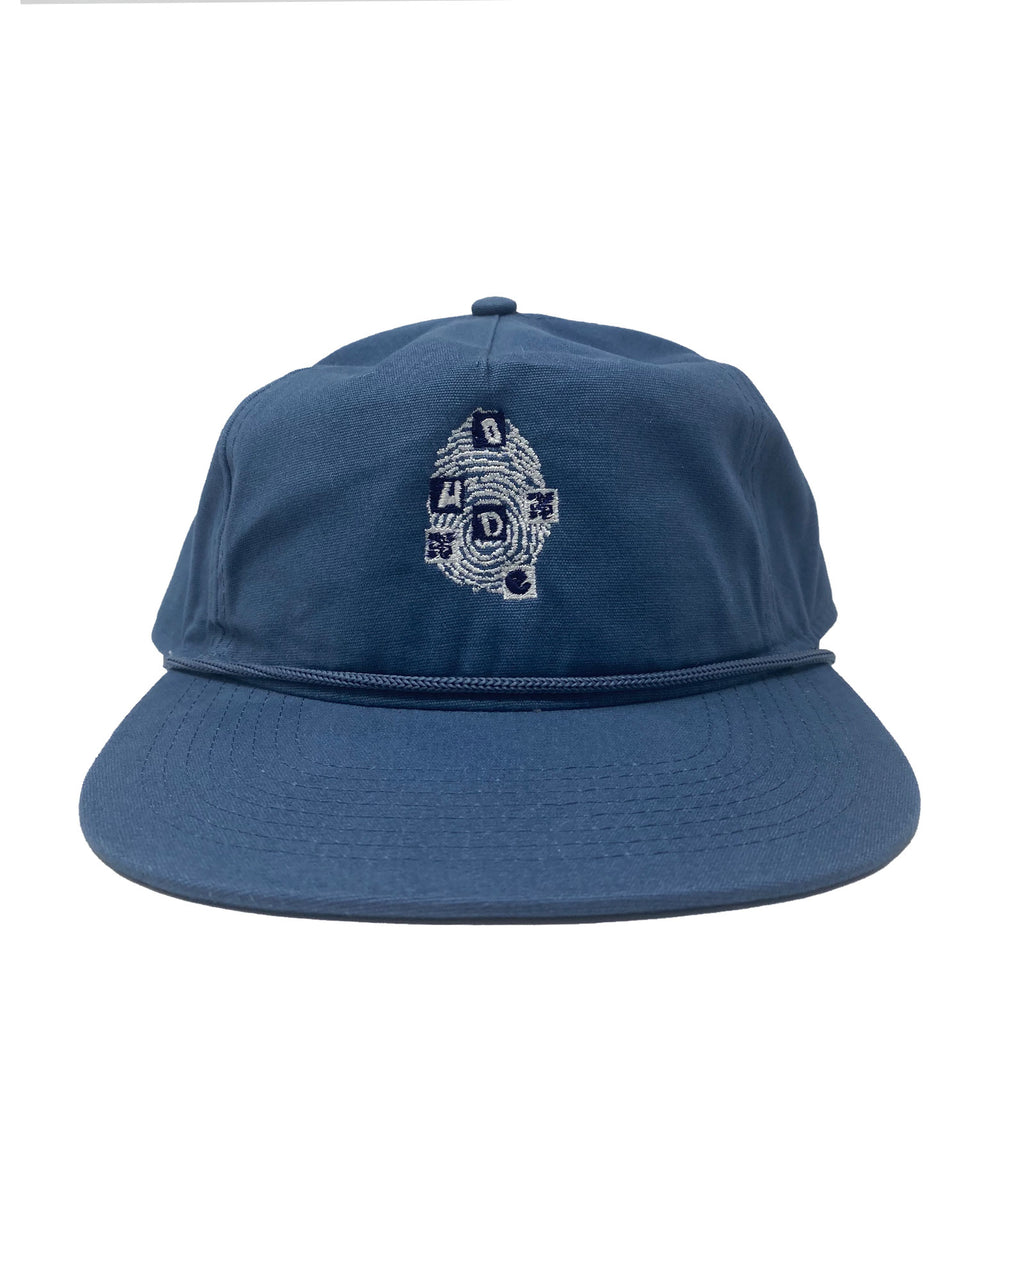 Data 5 panel structured cap